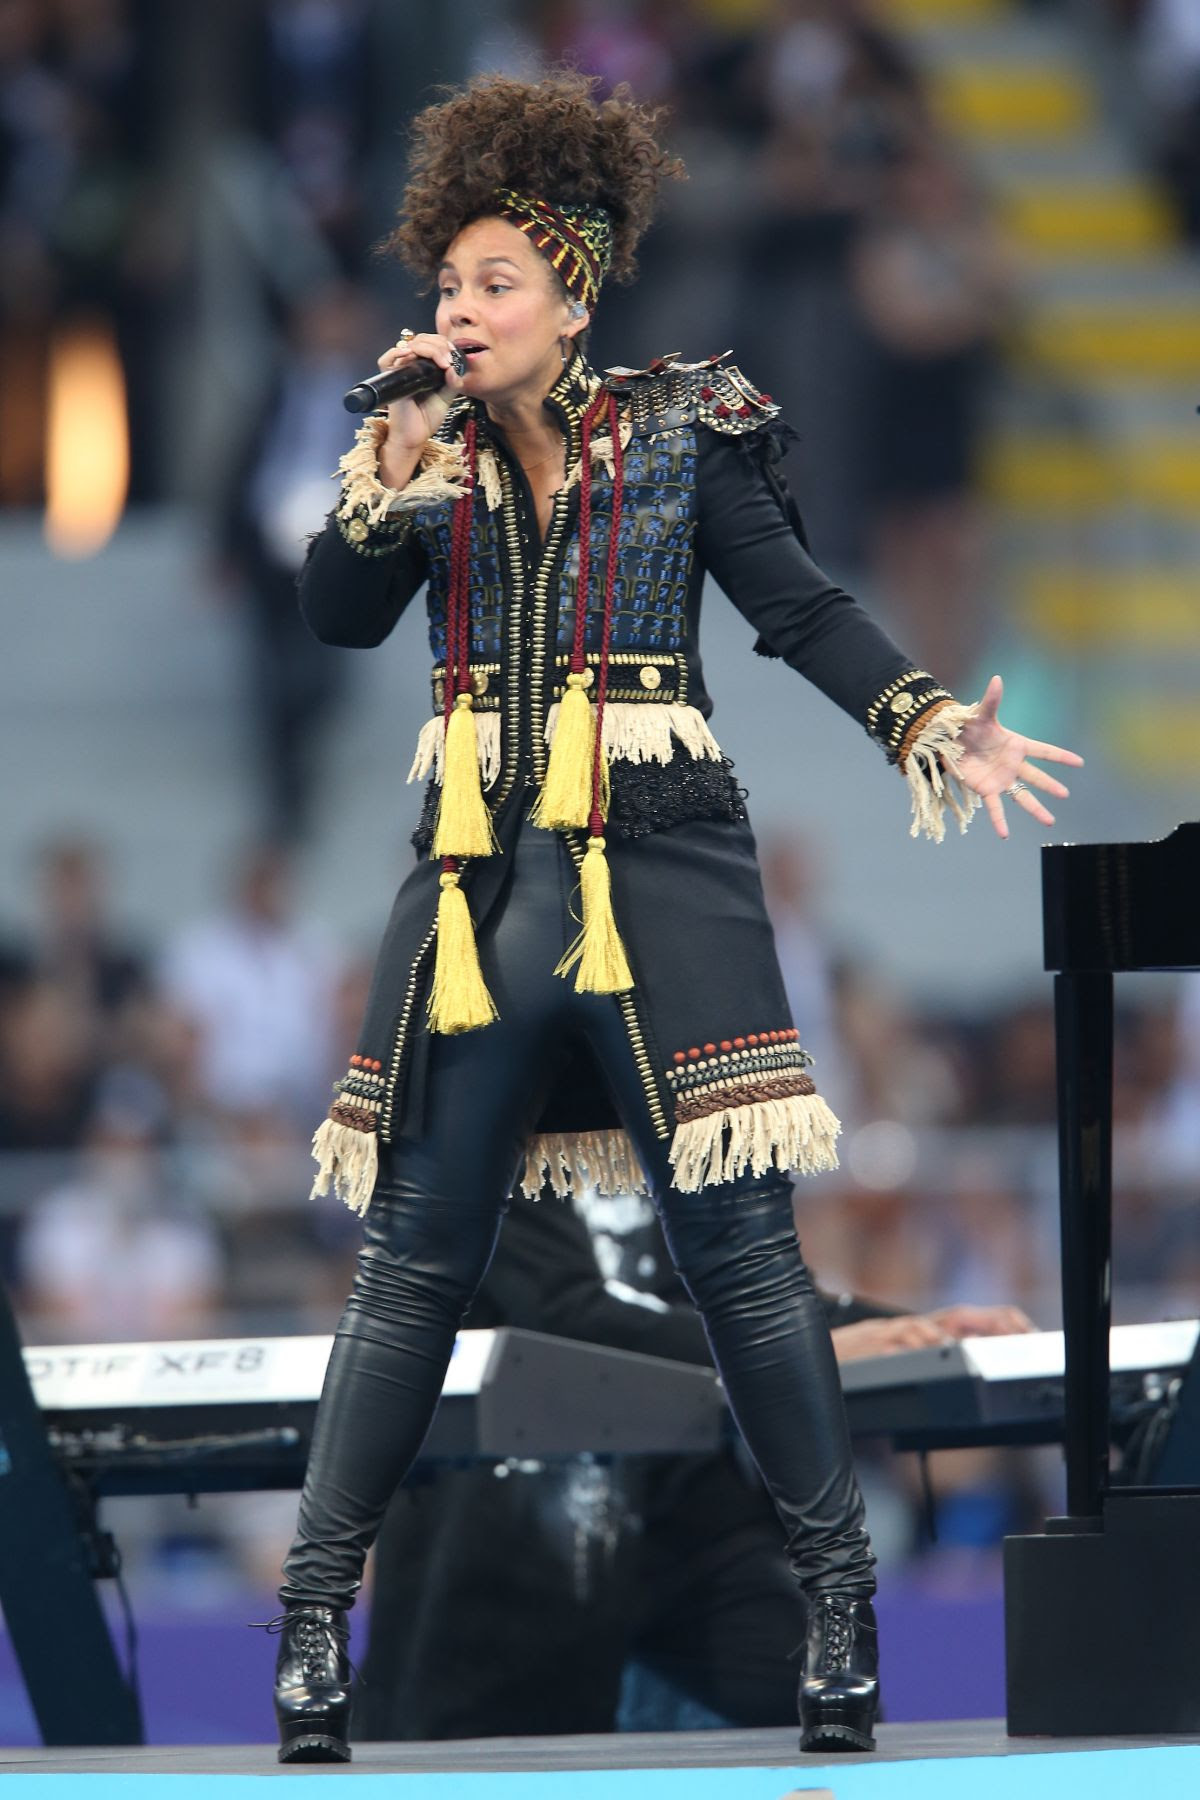 ALICIA KEYS Performs at UEFA Champions League Final Match in Milan 05/28/2016